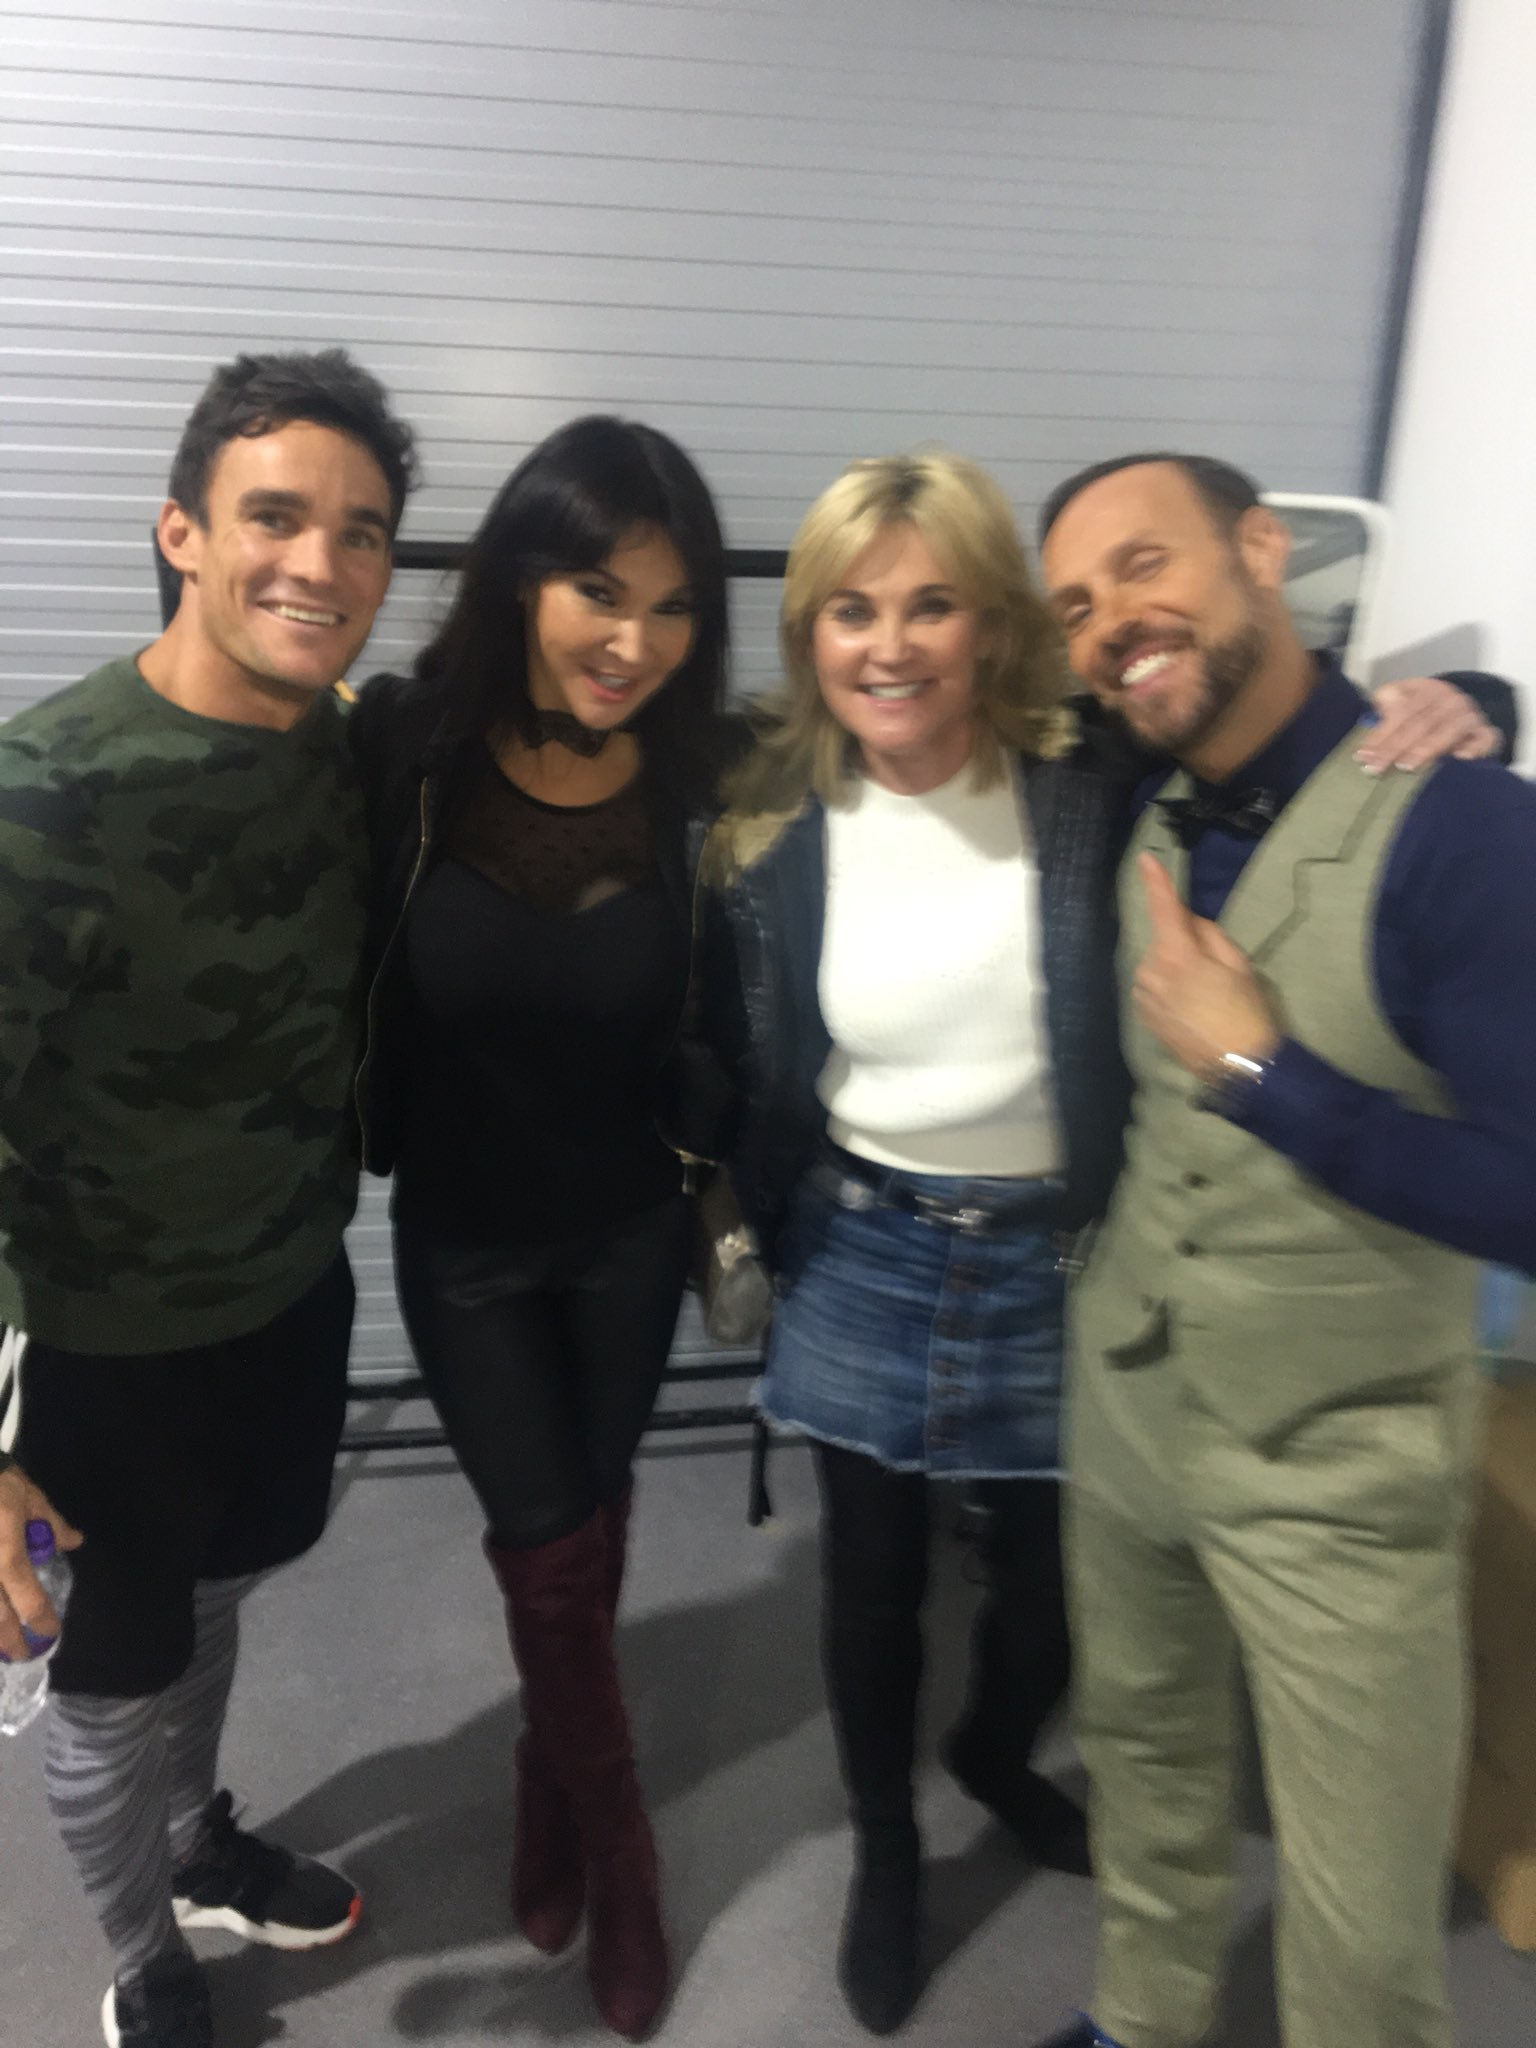 The stars of @dancingonice @maxevans13 @officialJasonG @AntheaTurner1 #fun #friends 💞 https://t.co/2VmbEqsbpi